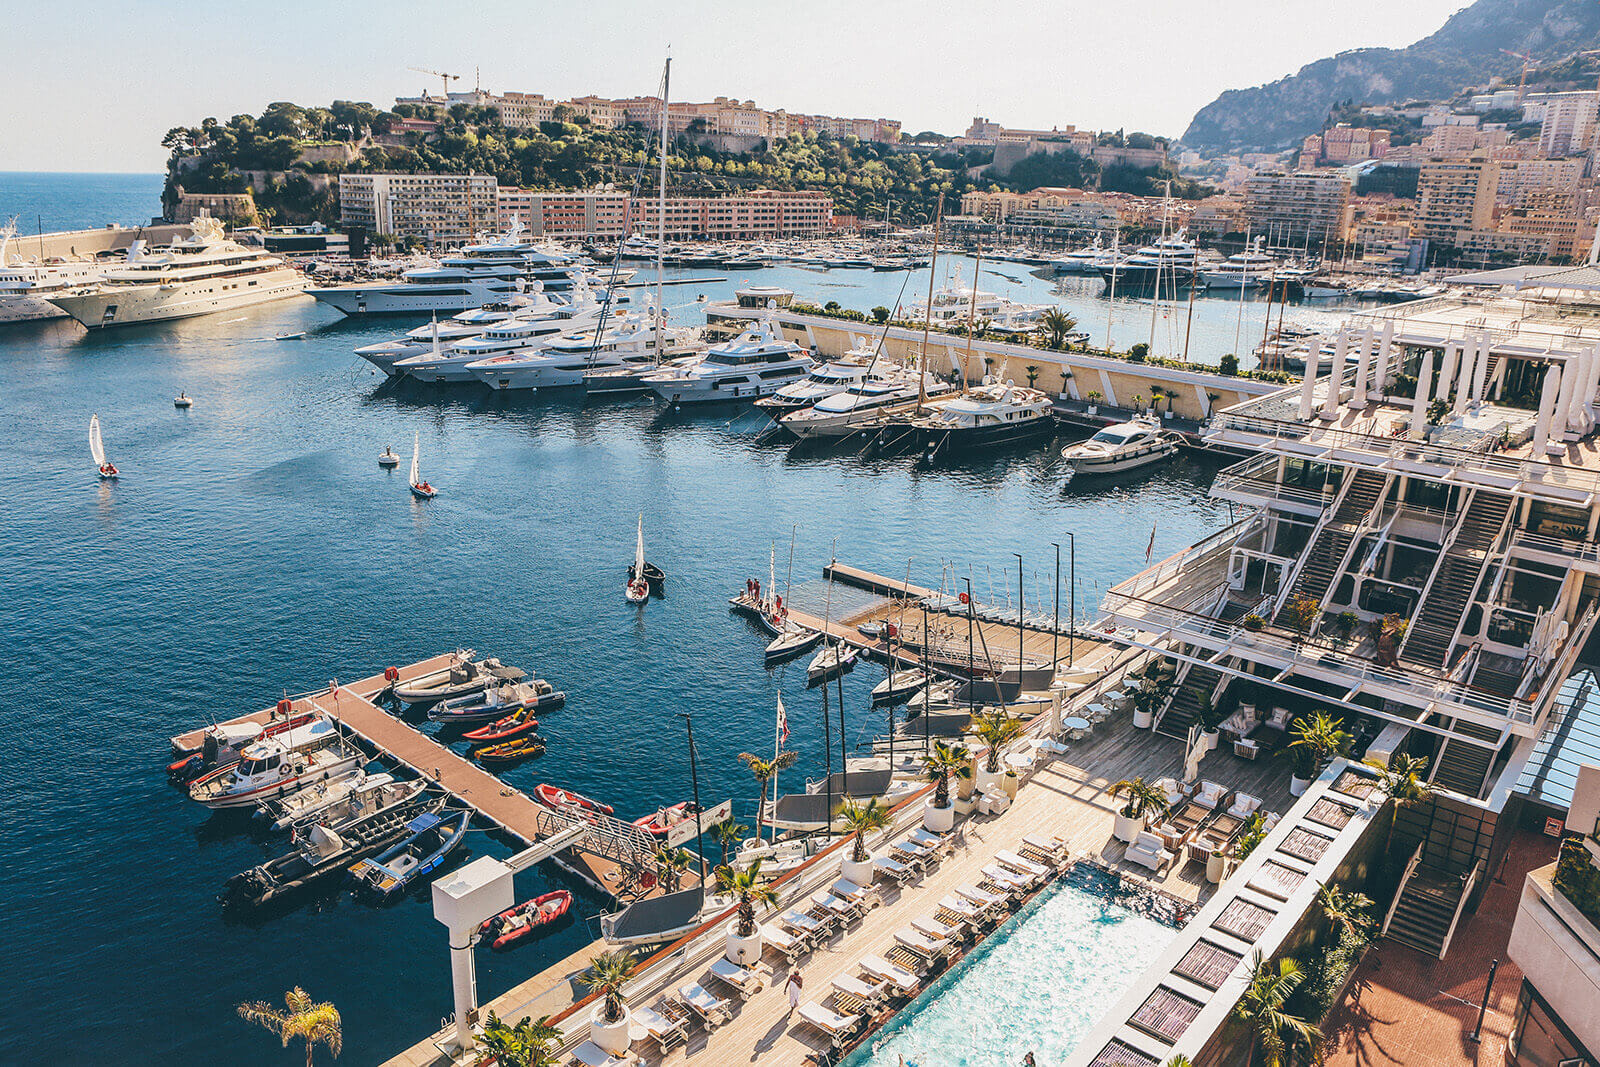 Port Hercules, otherwise known as Monaco Harbour